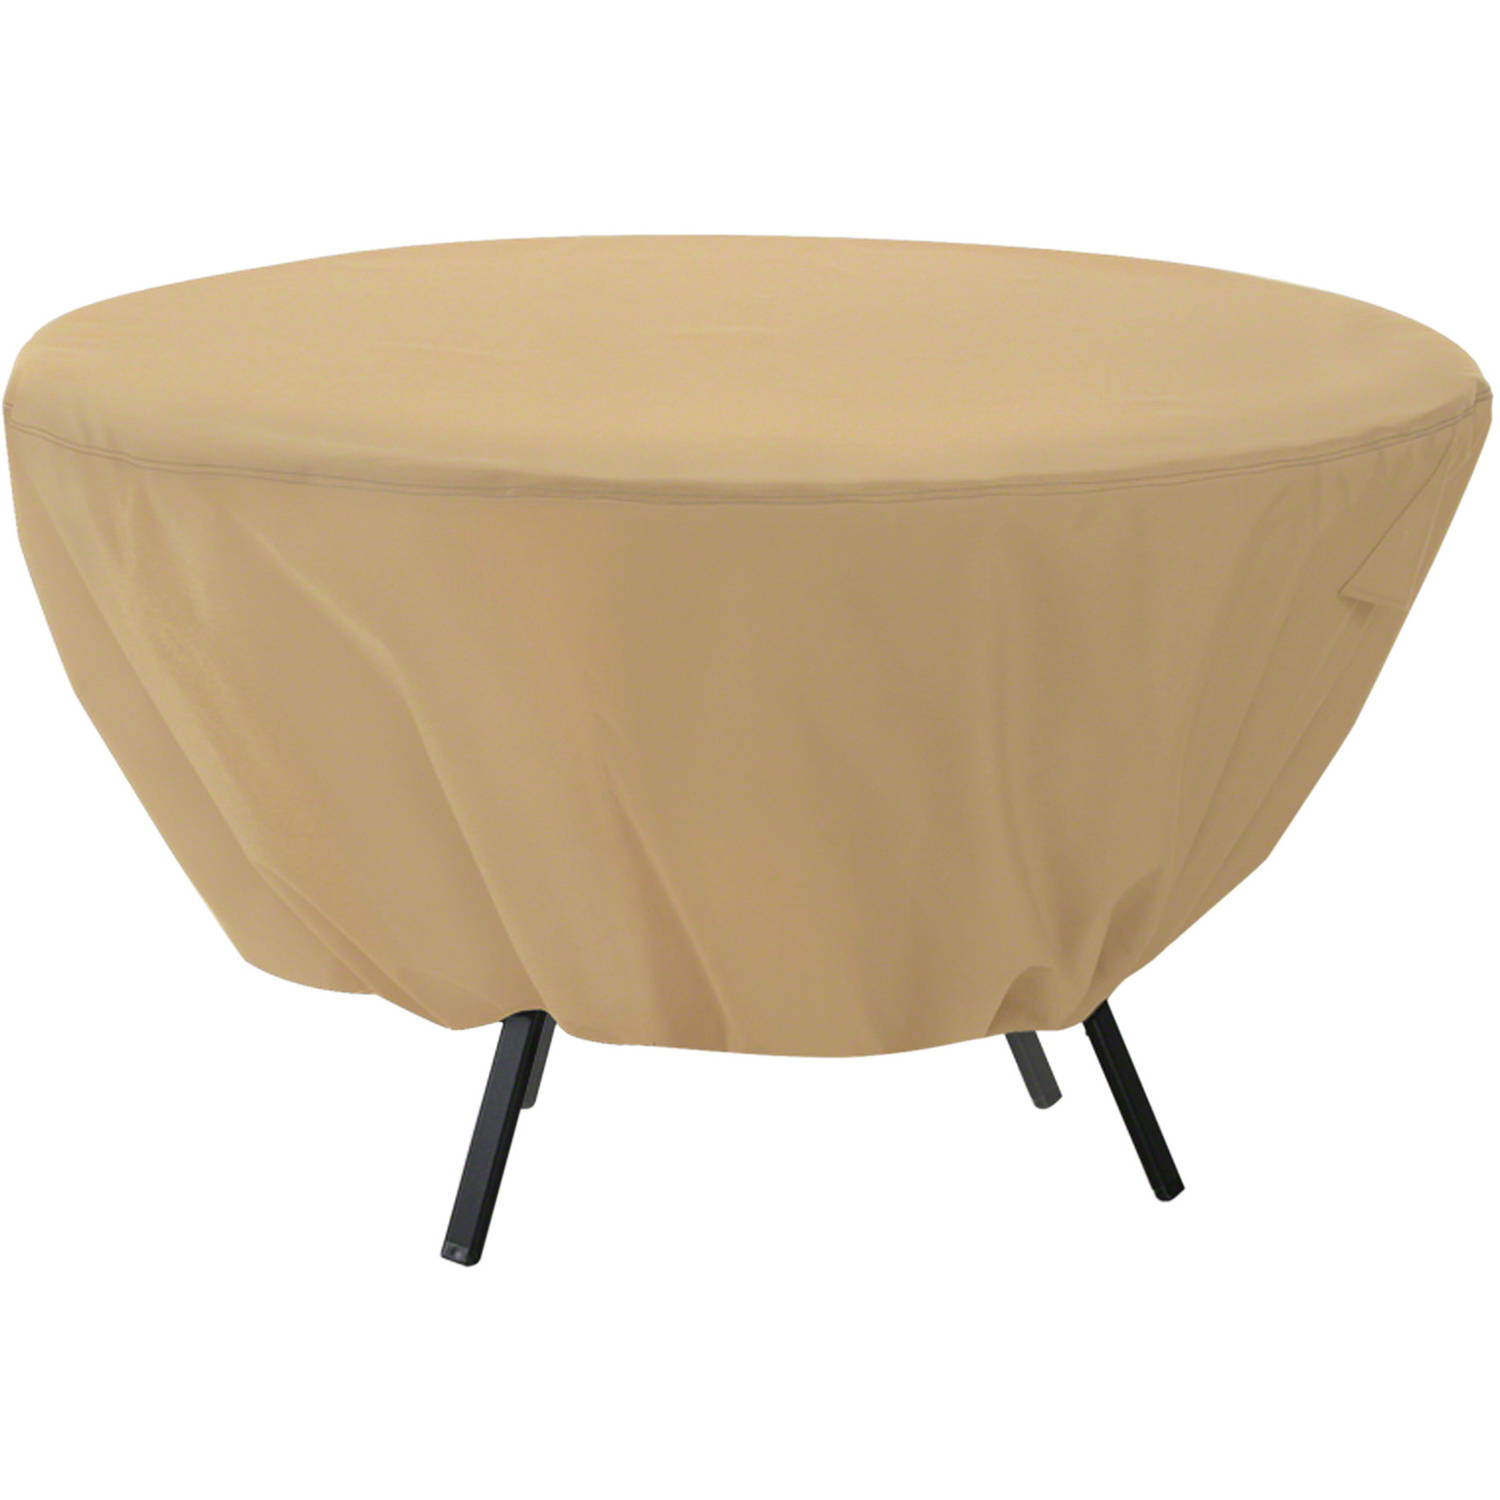 Classic Accessories Terrazzo® Round Patio Table Cover   All Weather  Protection Outdoor Furniture Cover (